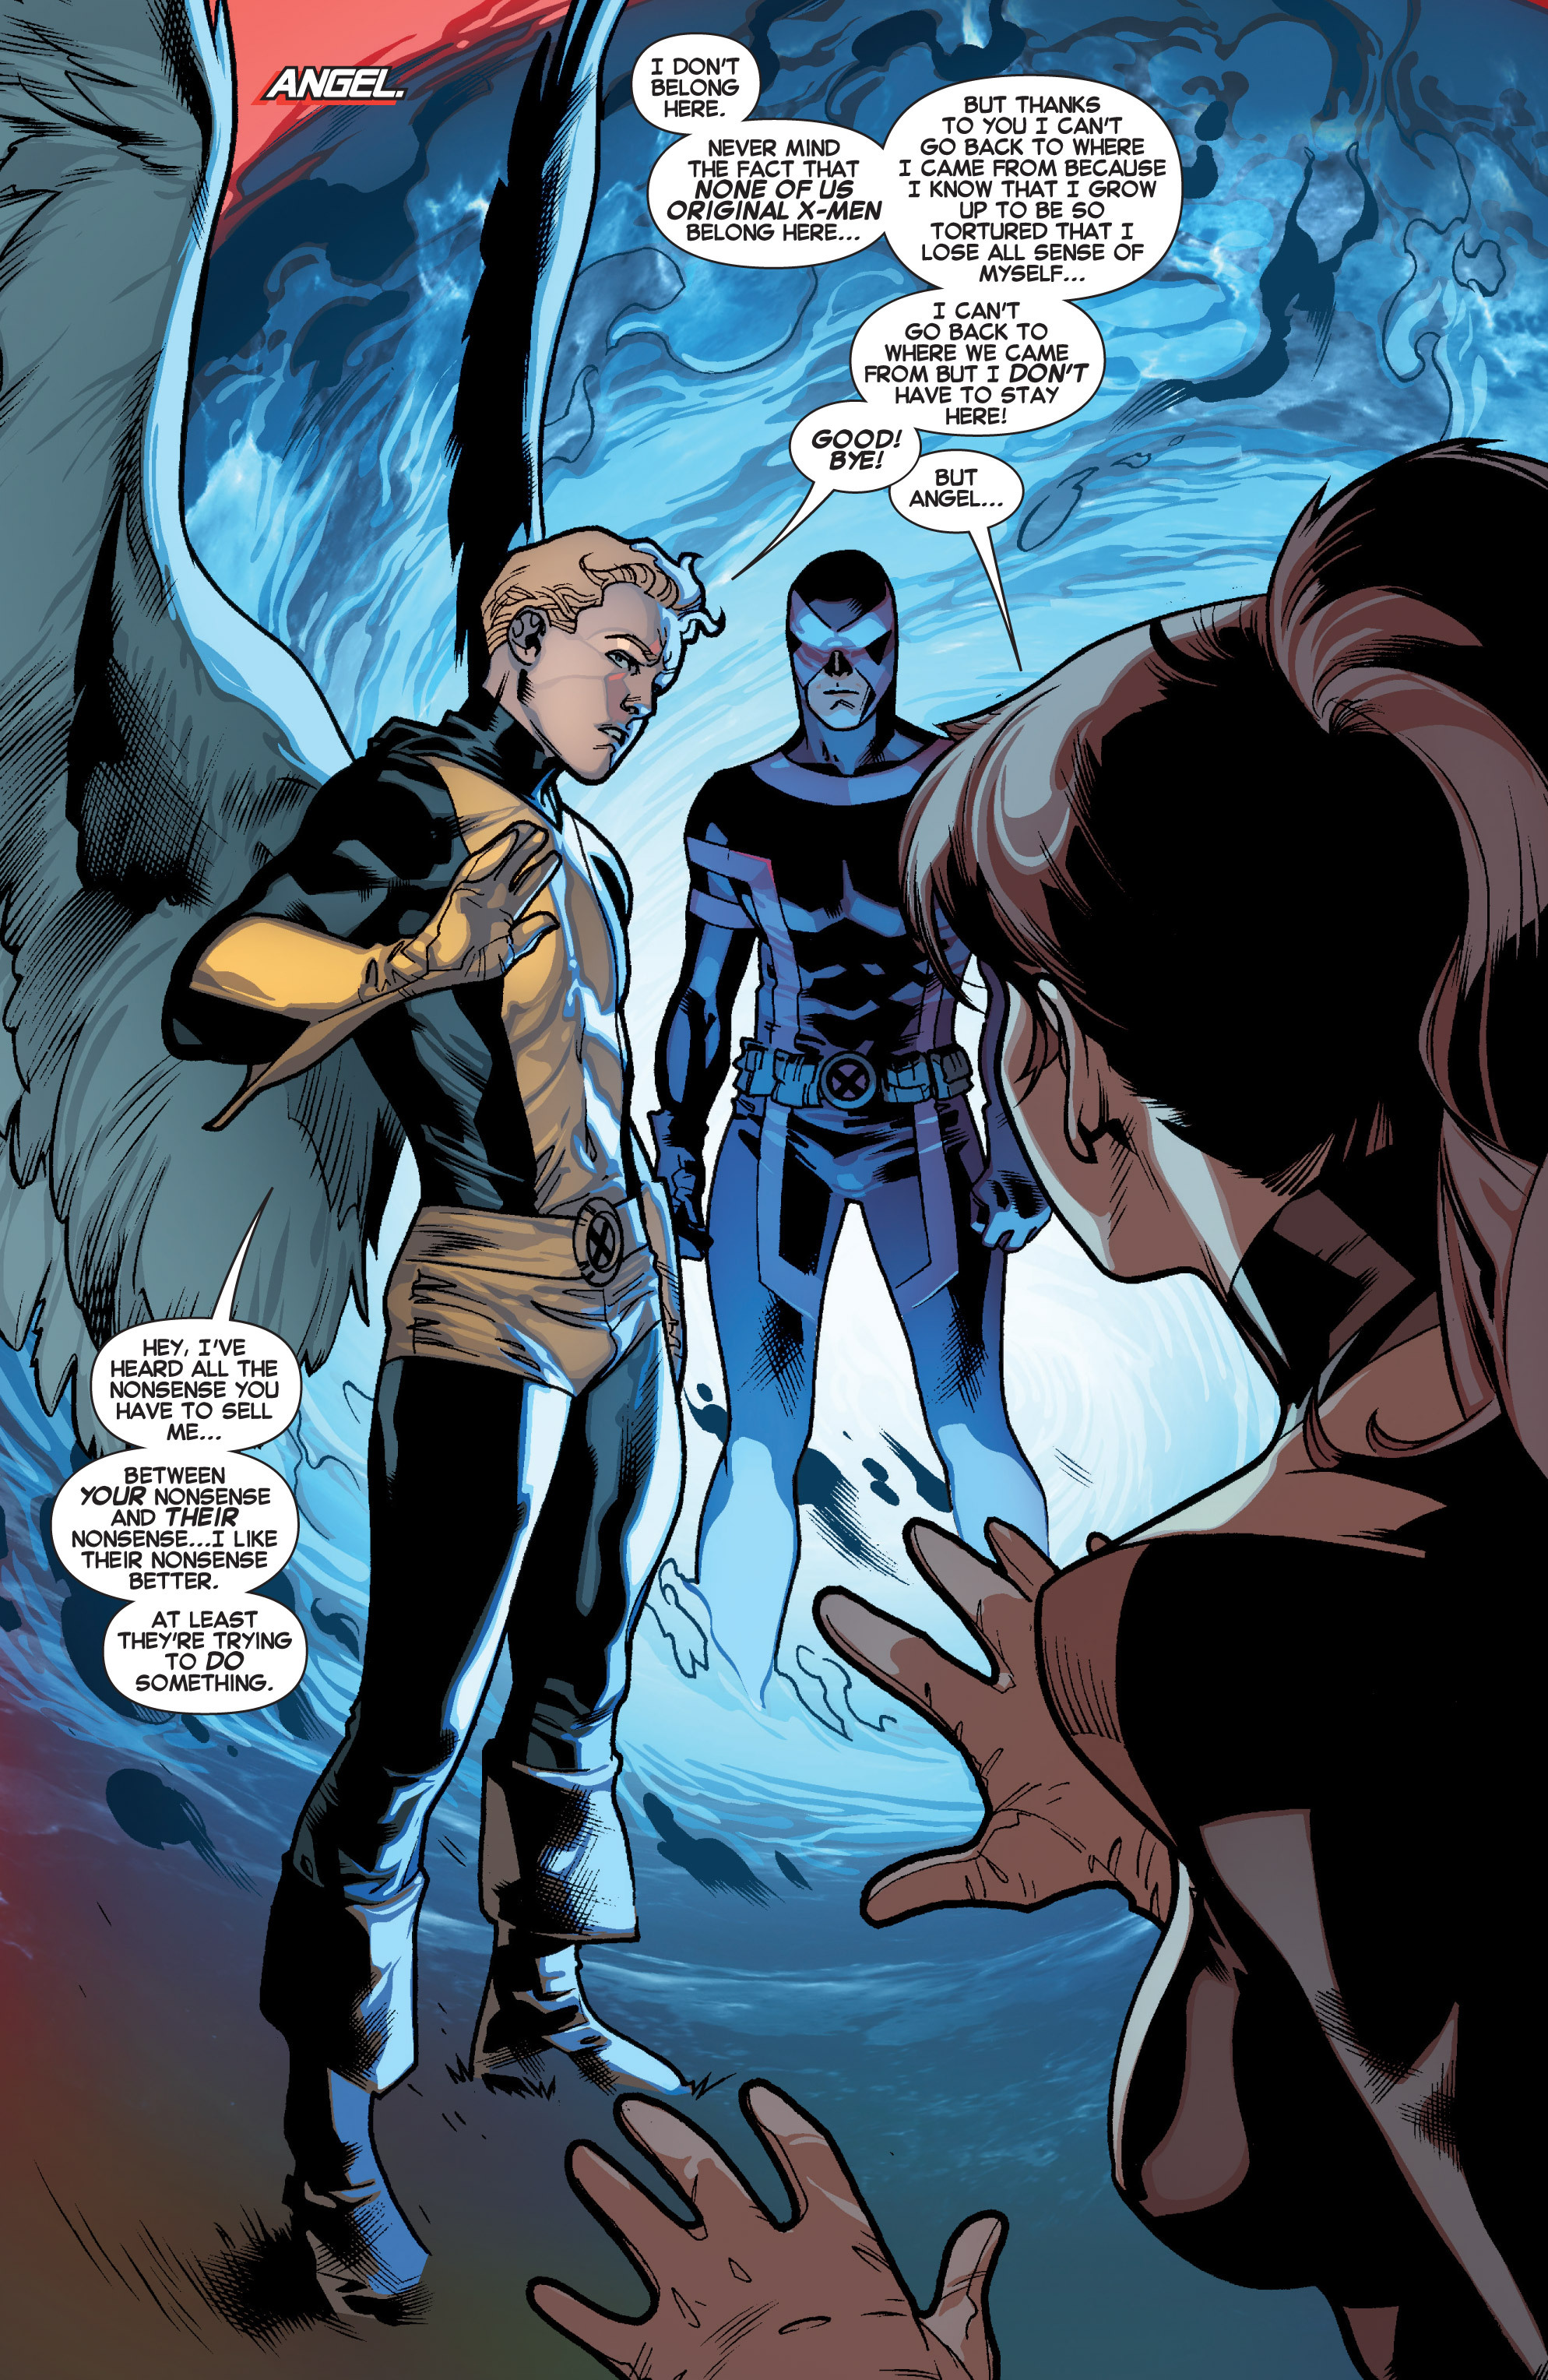 Read online All-New X-Men (2013) comic -  Issue # _Special - Out Of Their Depth - 6